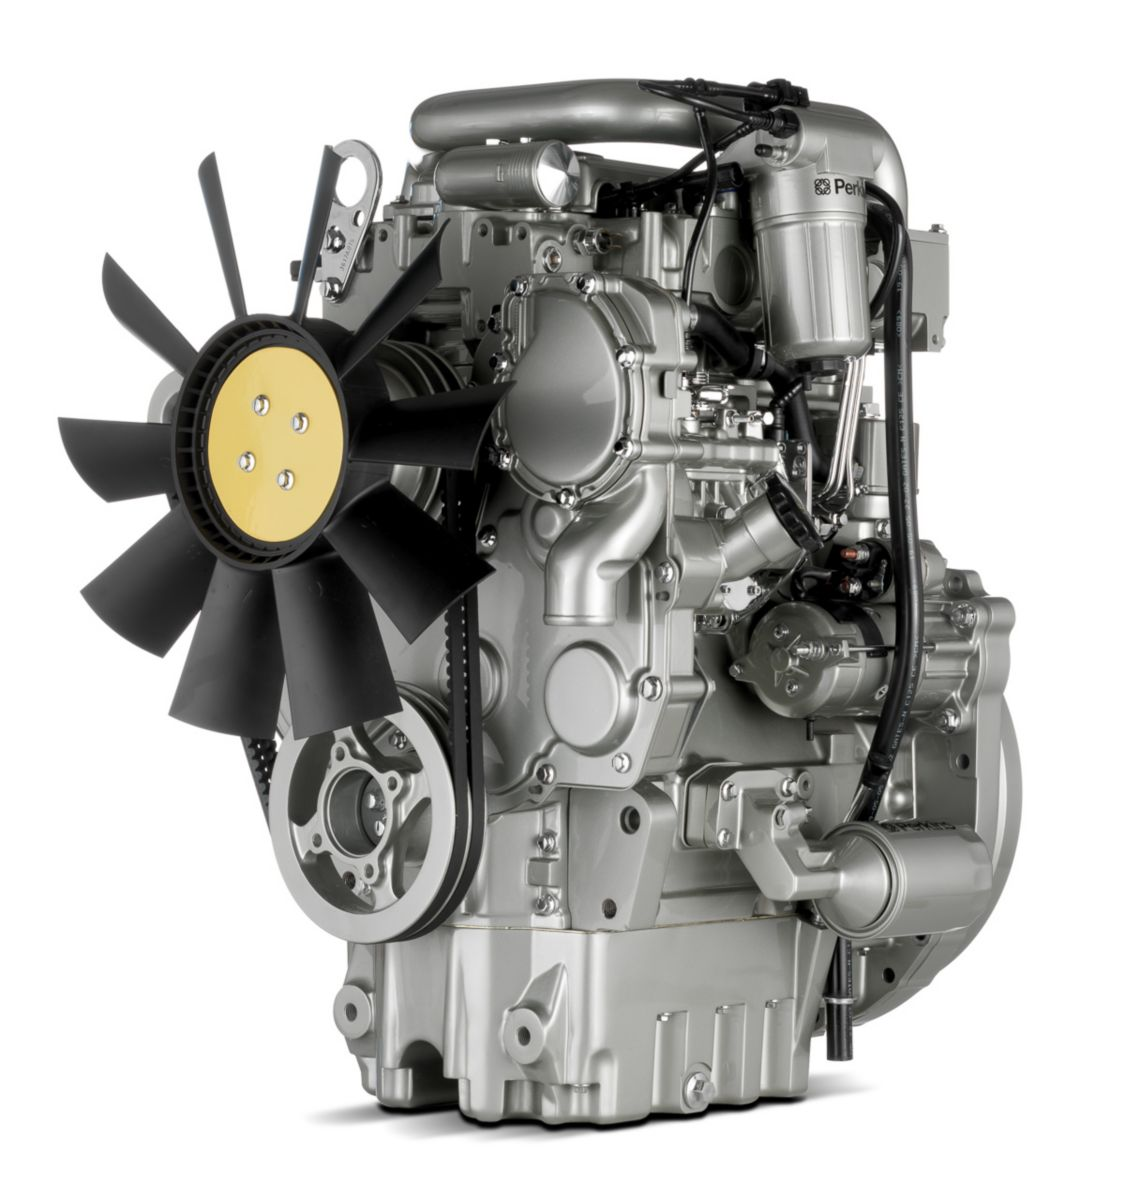 Perkins will exhibit a complete range of diesel engines that meet Brazil MAR-1 emission standards at Brazil's Agrishow 2017